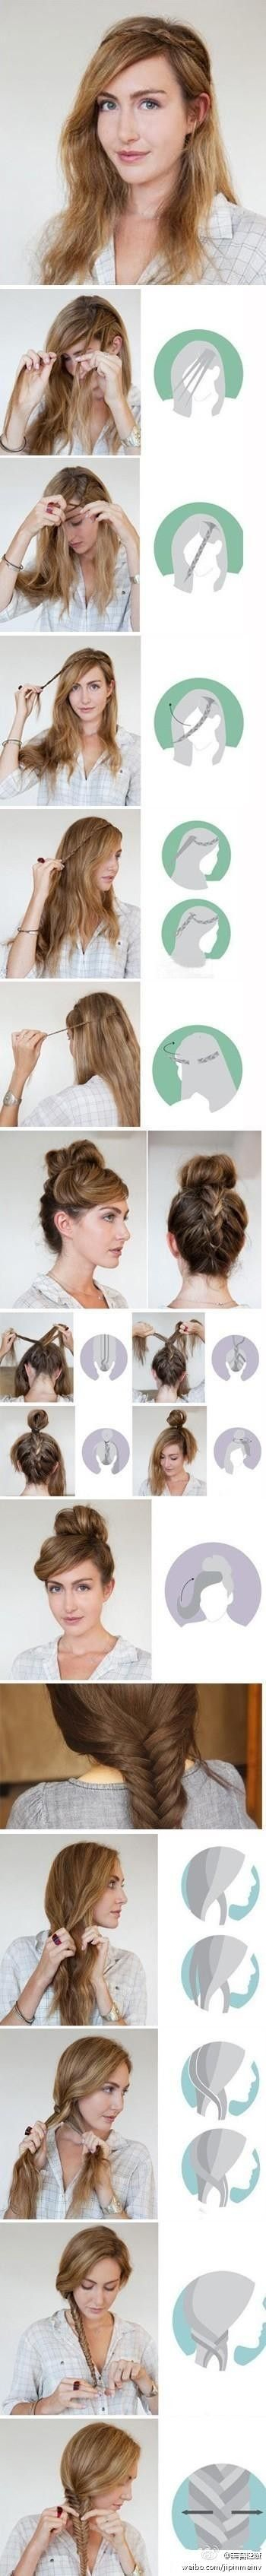 cute easy hairdos